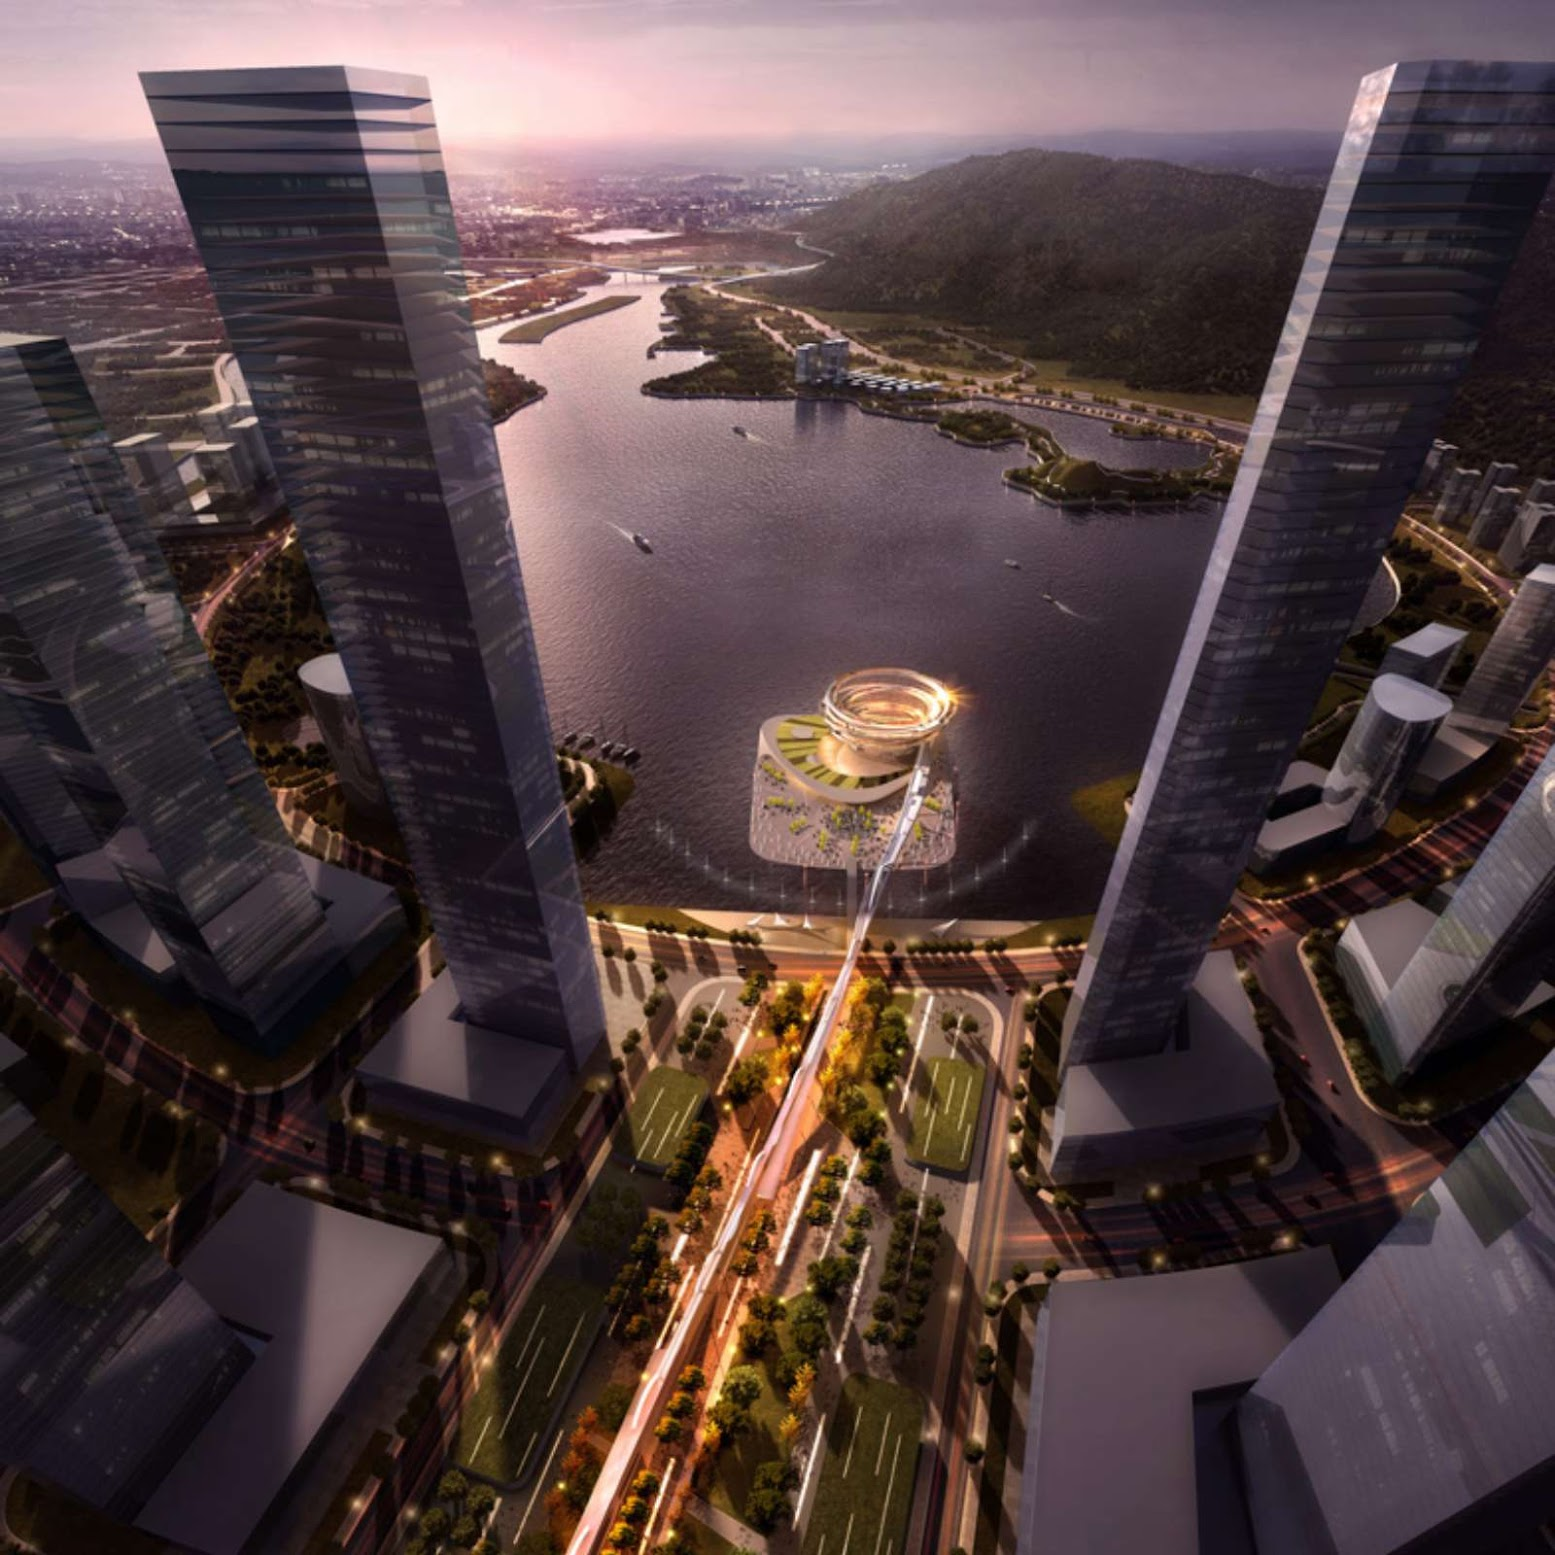 KSP wins the Meixi Urban Helix competition